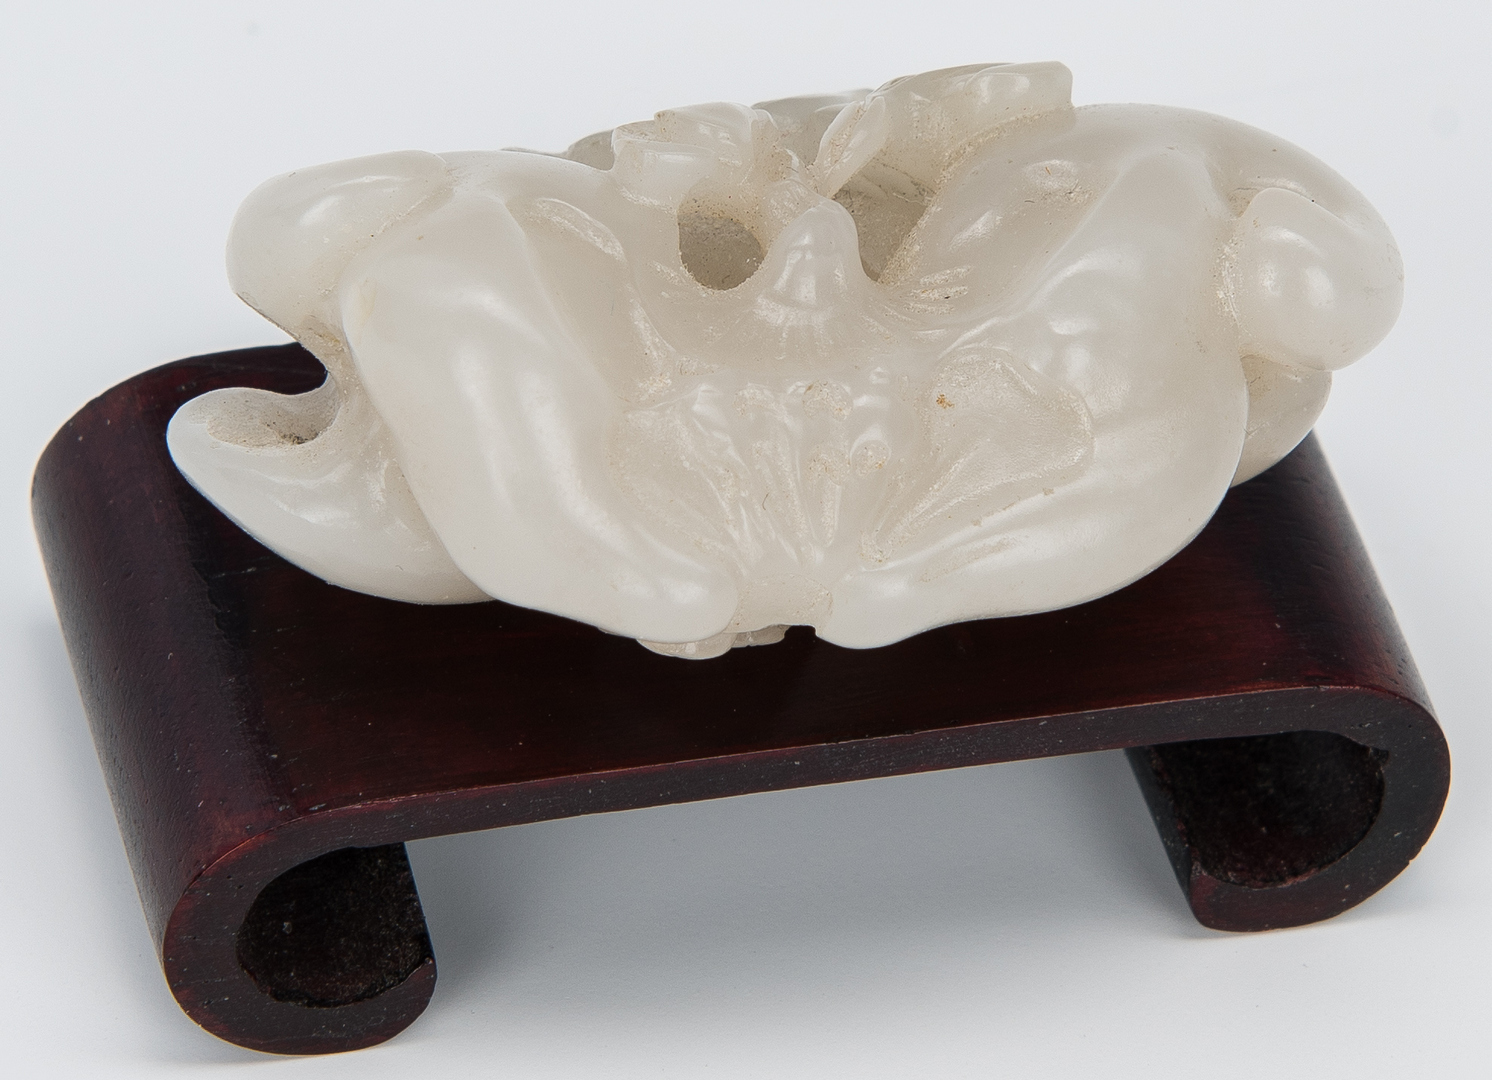 Lot 323: 4 Chinese Carved Jade Items